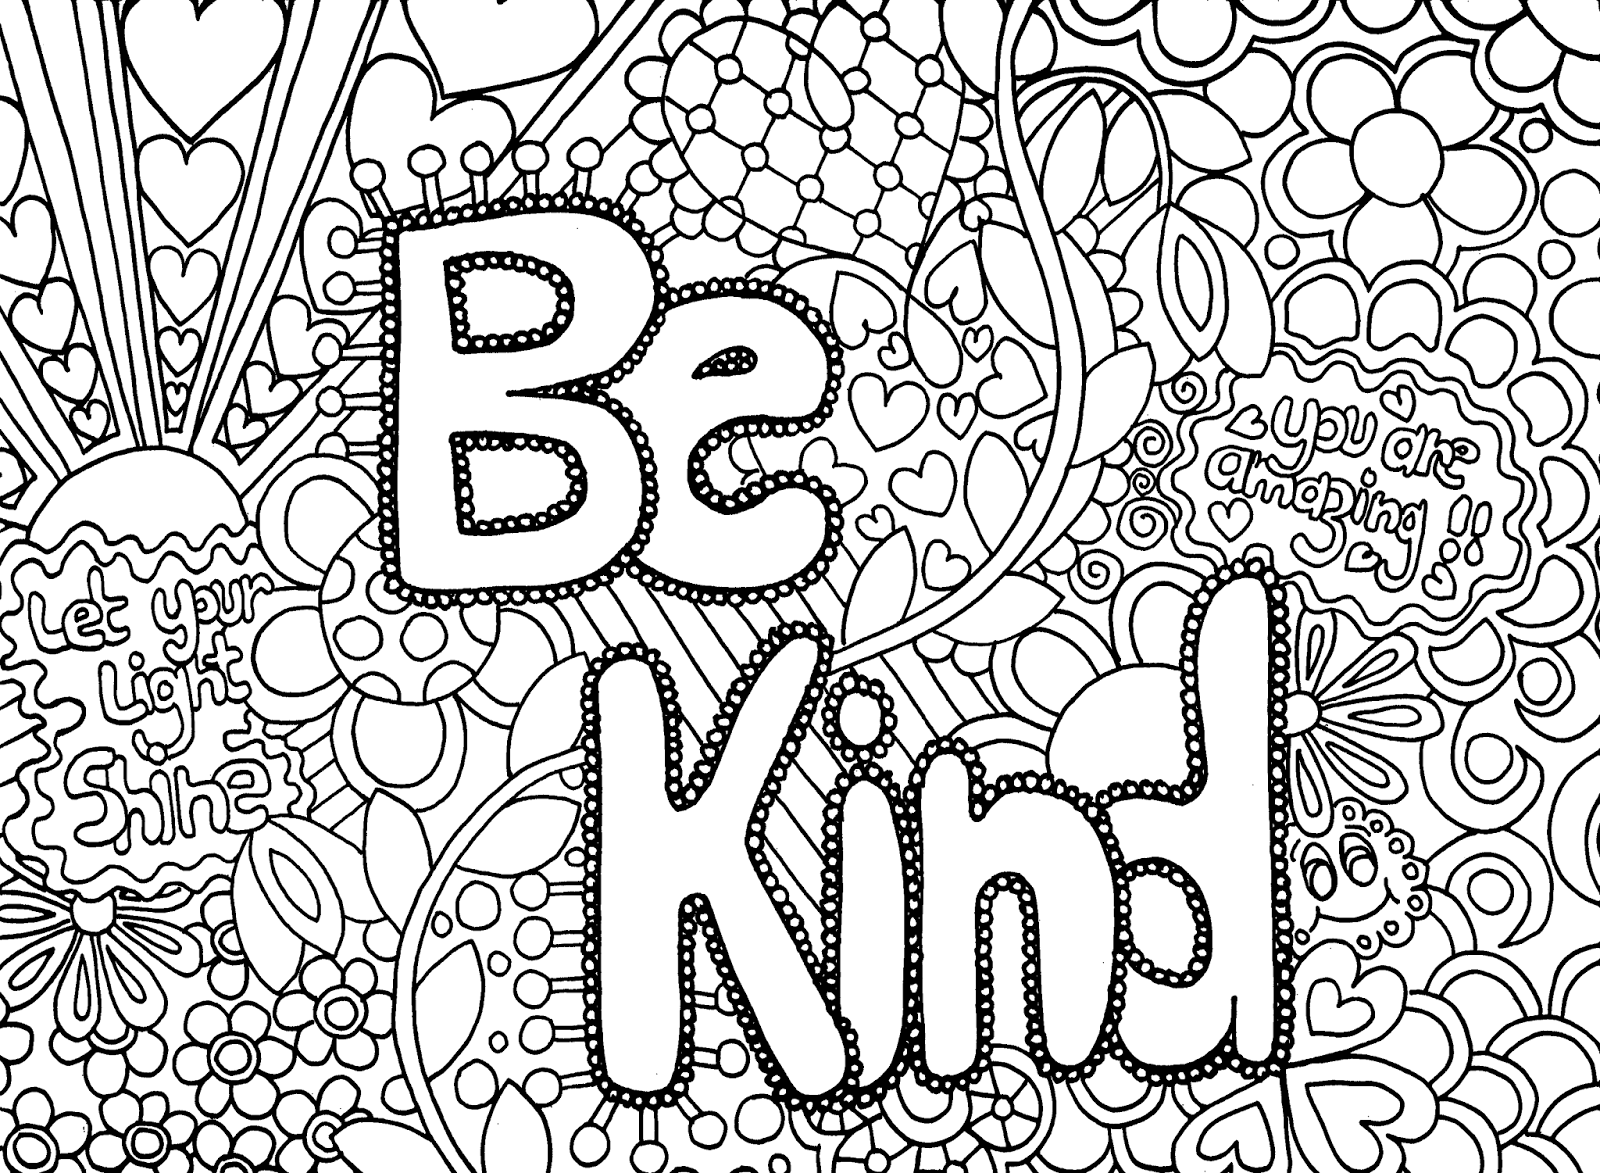 free printable coloring pages for kids coloring printables - HD 1600×1173